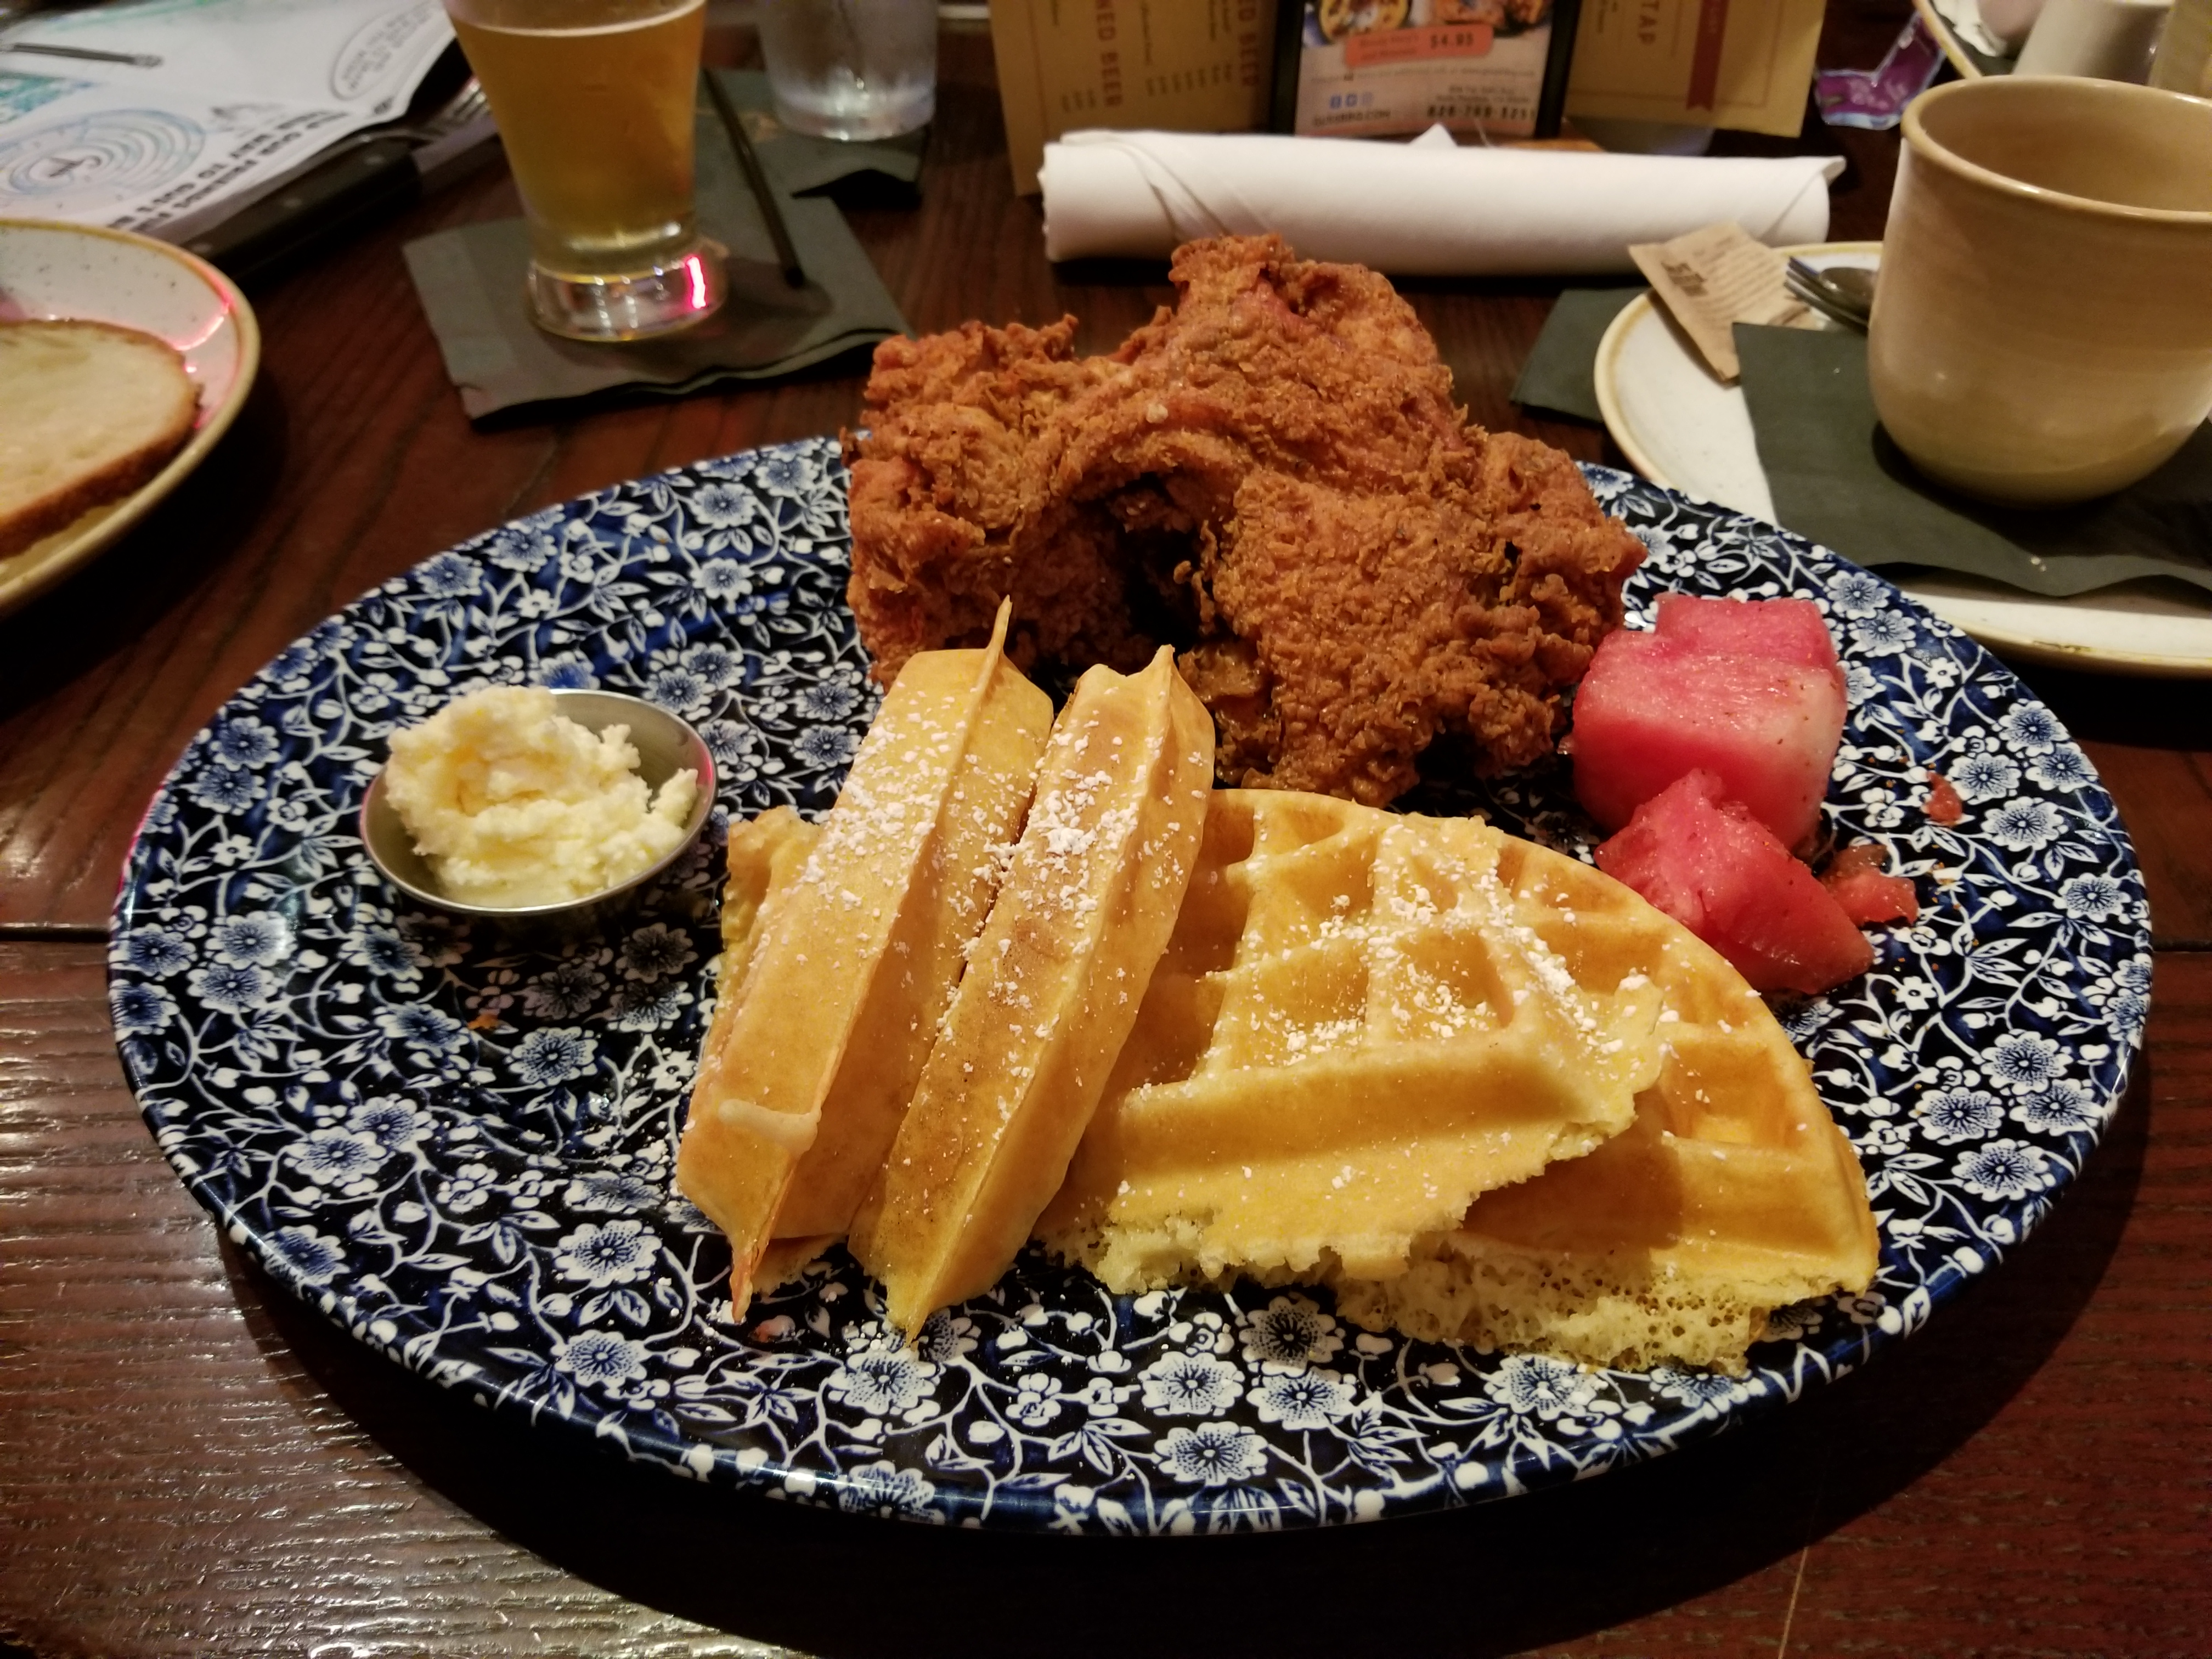 Chicken and Waffles. The chicken was deboned for easier eats!